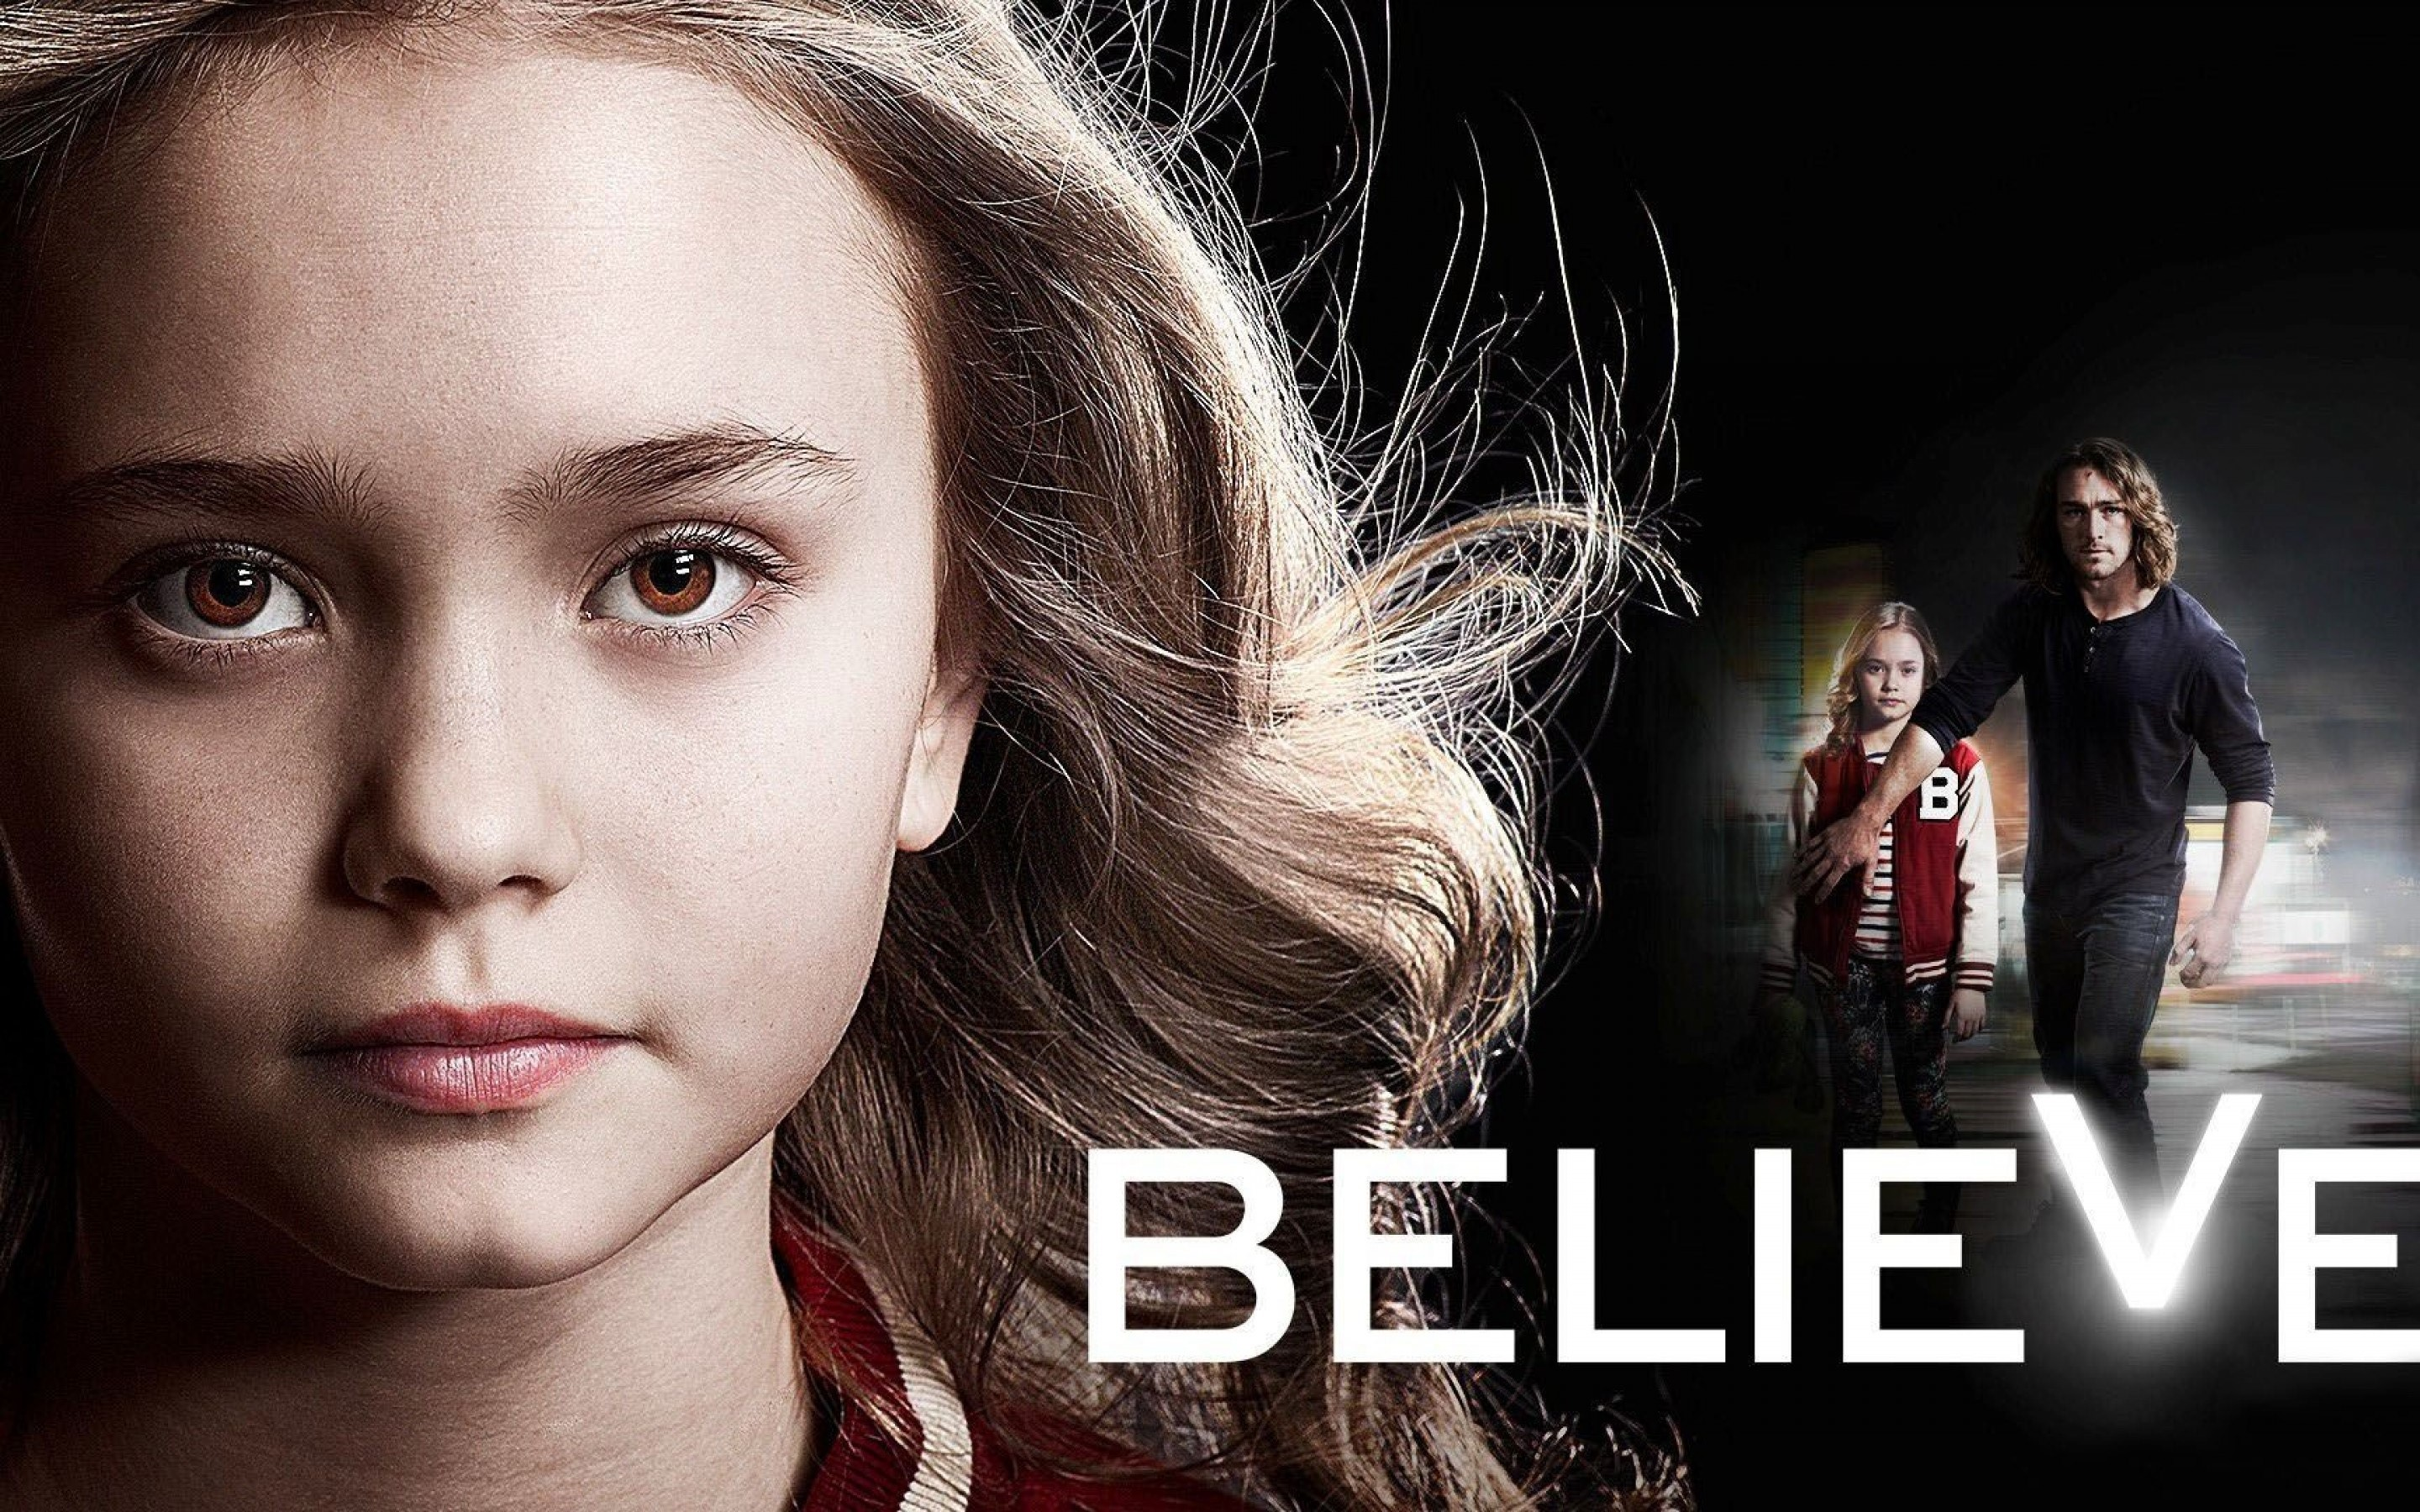 Believe 2014 TV Series 2916.22 Kb